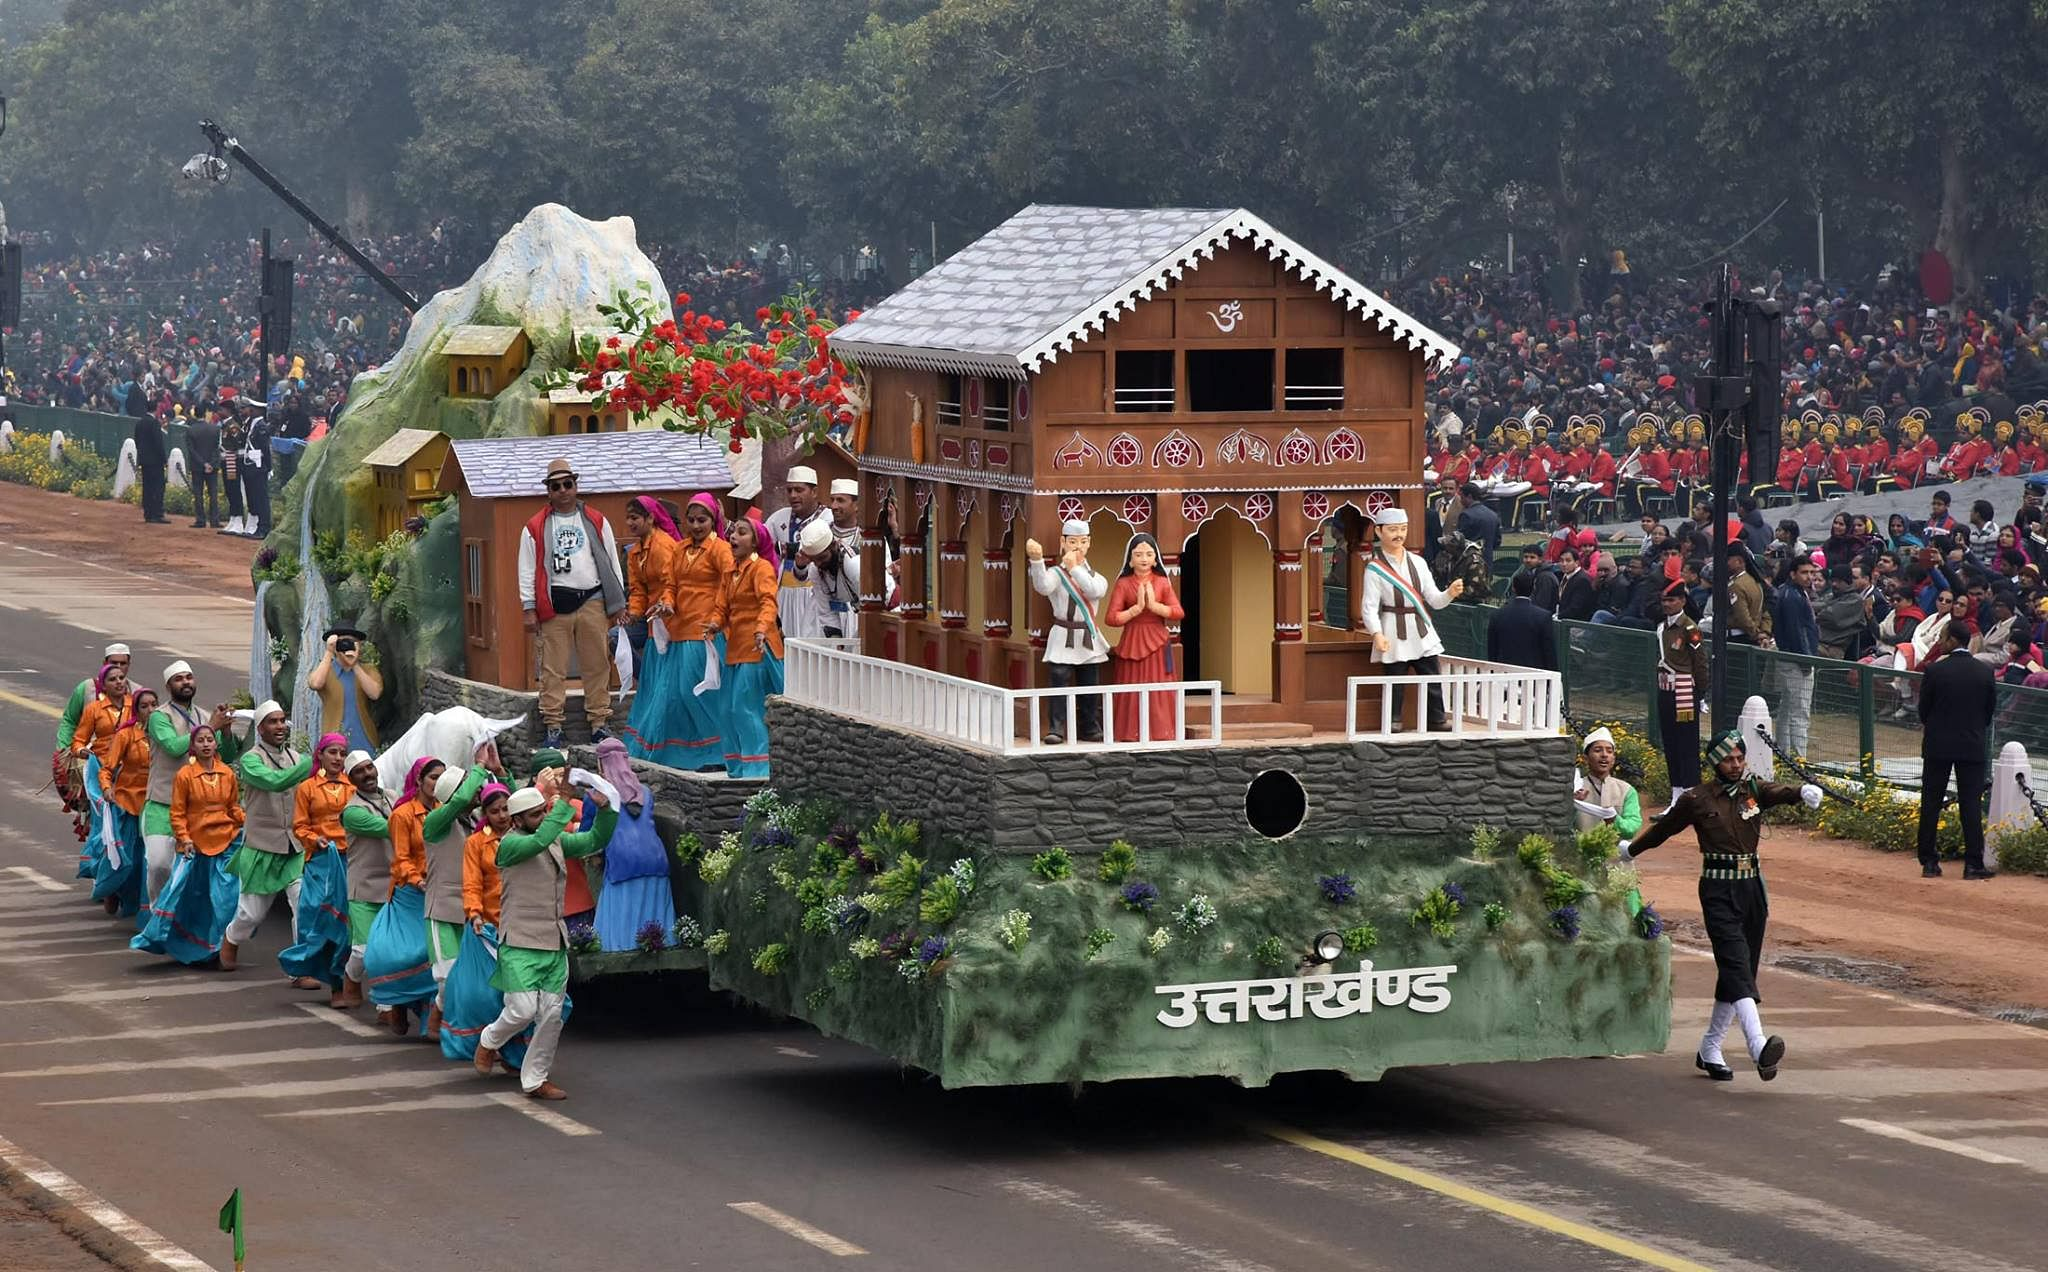 Republic Day - this will be the answer to the question: What a holiday in Bashkiria on October 11 54